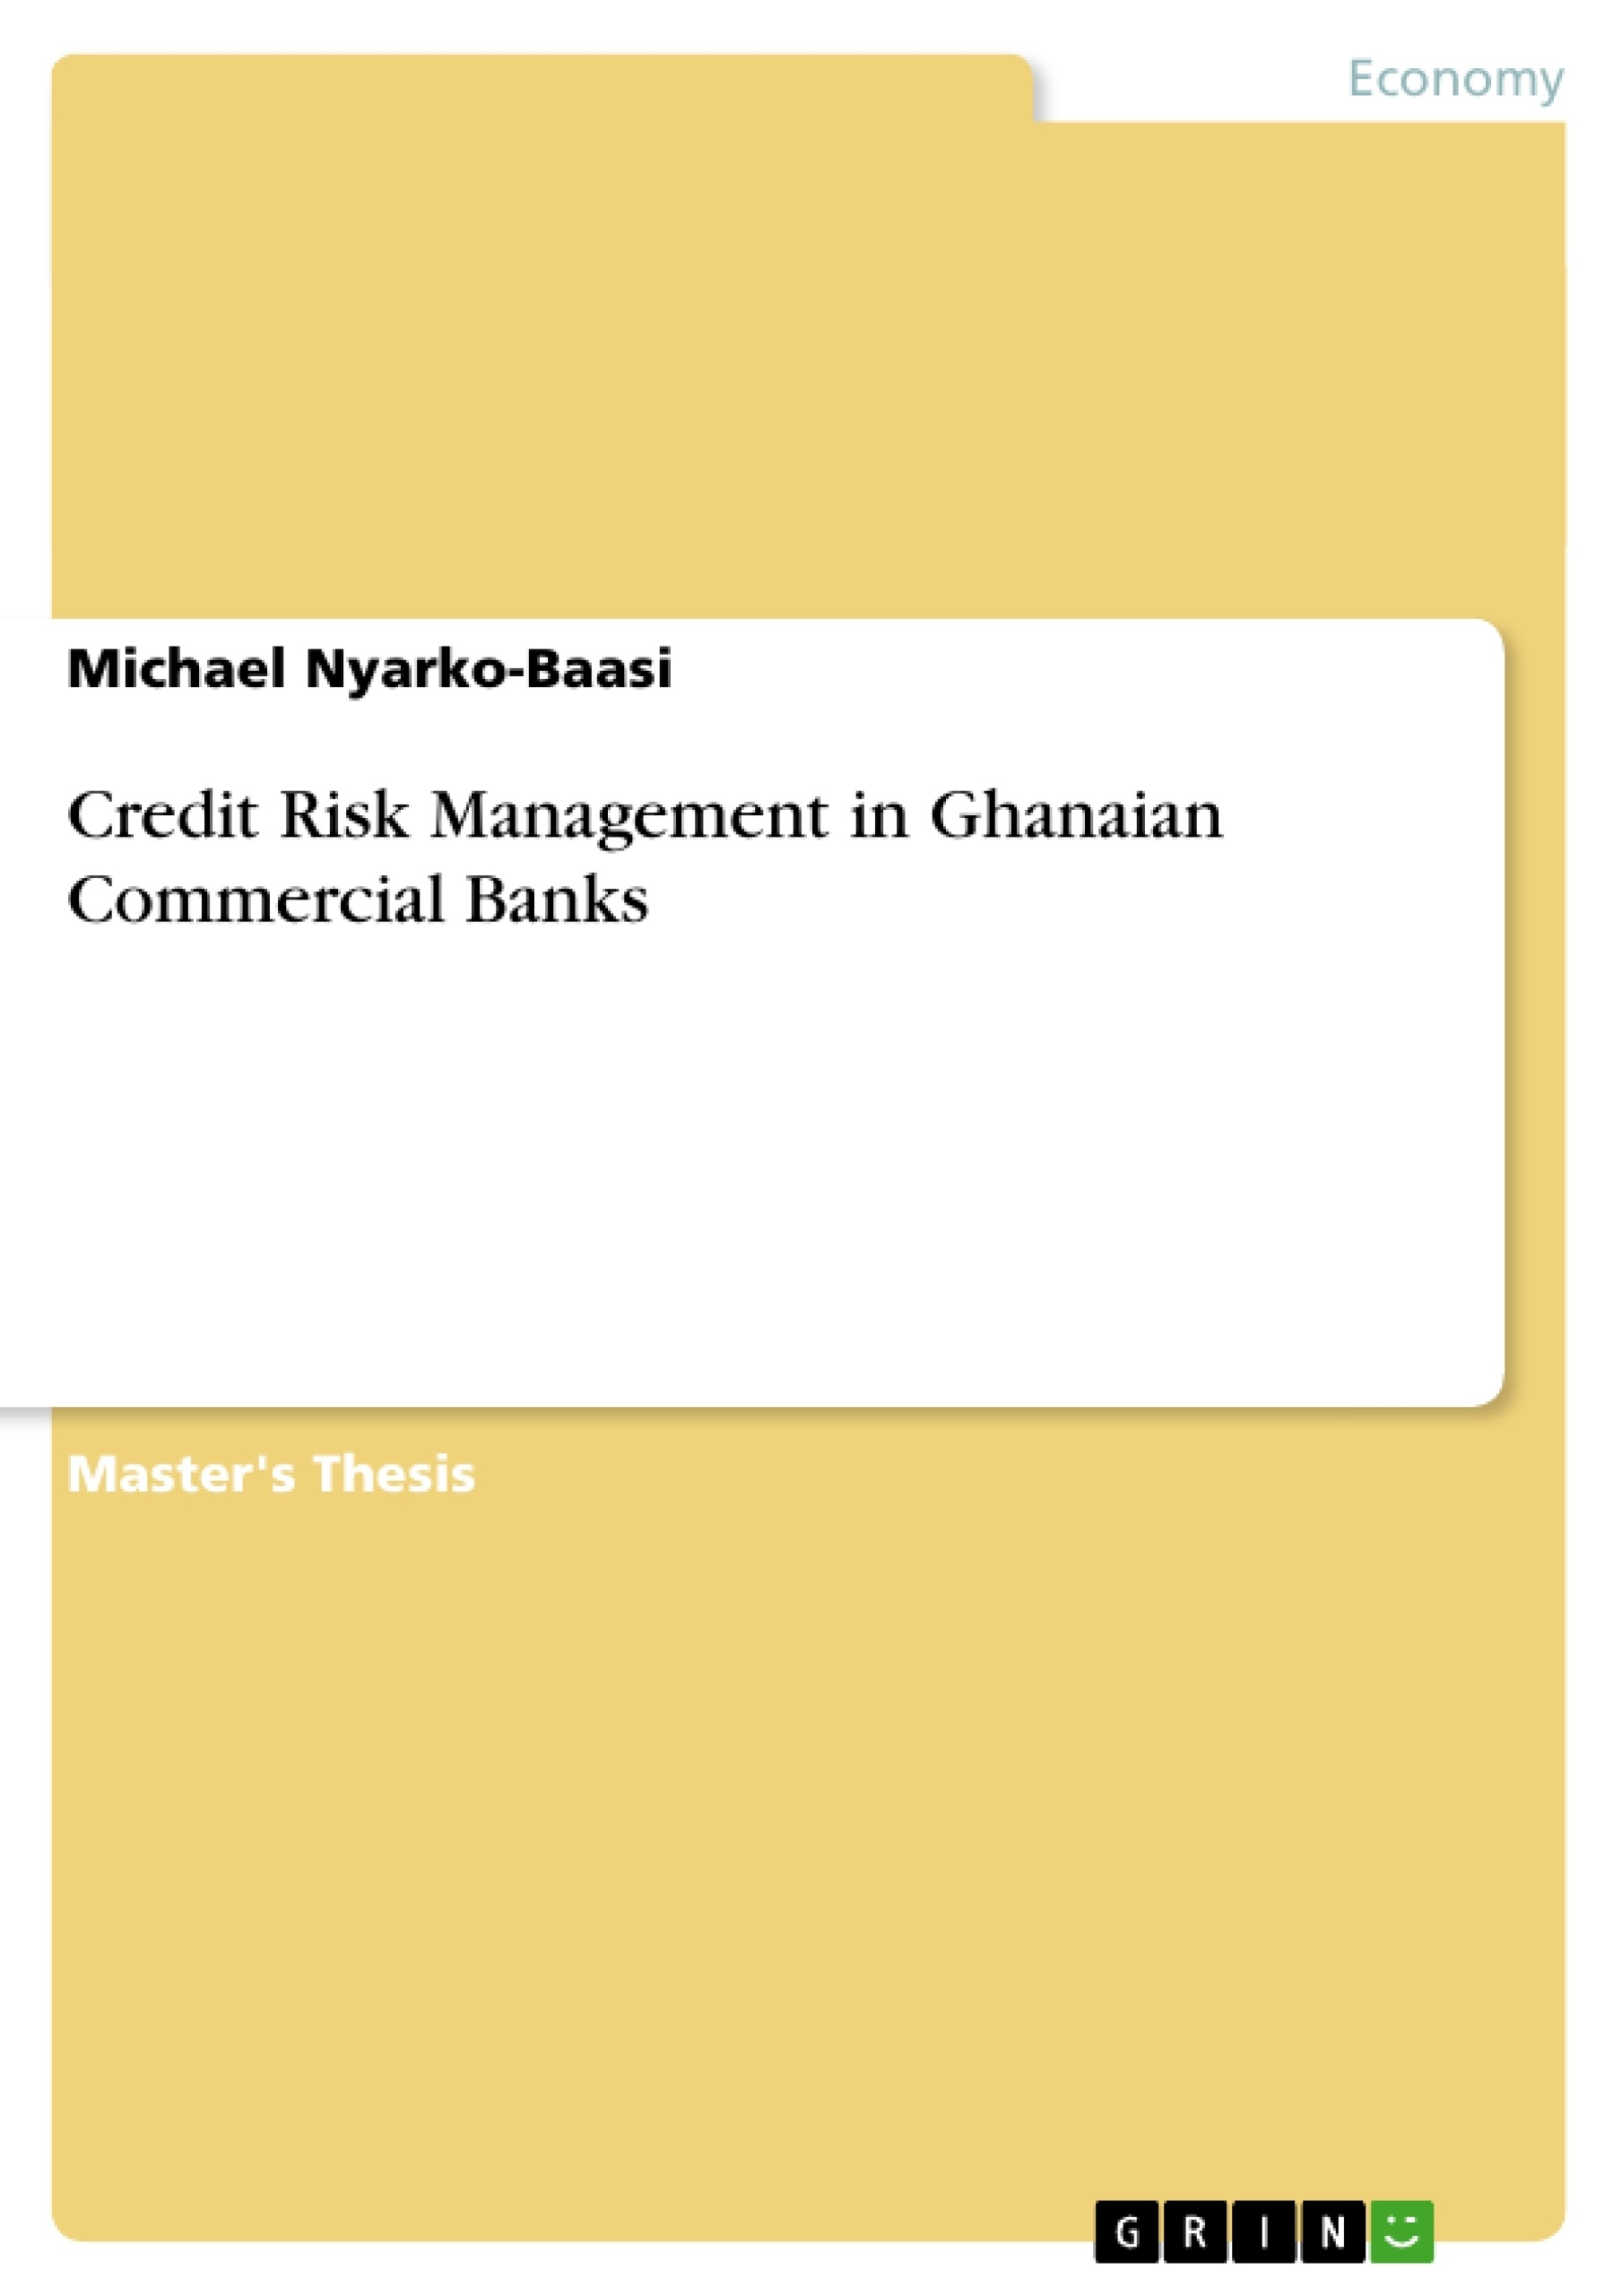 thesis on credit risk management in commercial banks Effective credit risk management process is a way to manage portfolio of credit facilities credit risk management encompasses identification, measurement, monitoring and control of the credit risk exposures.